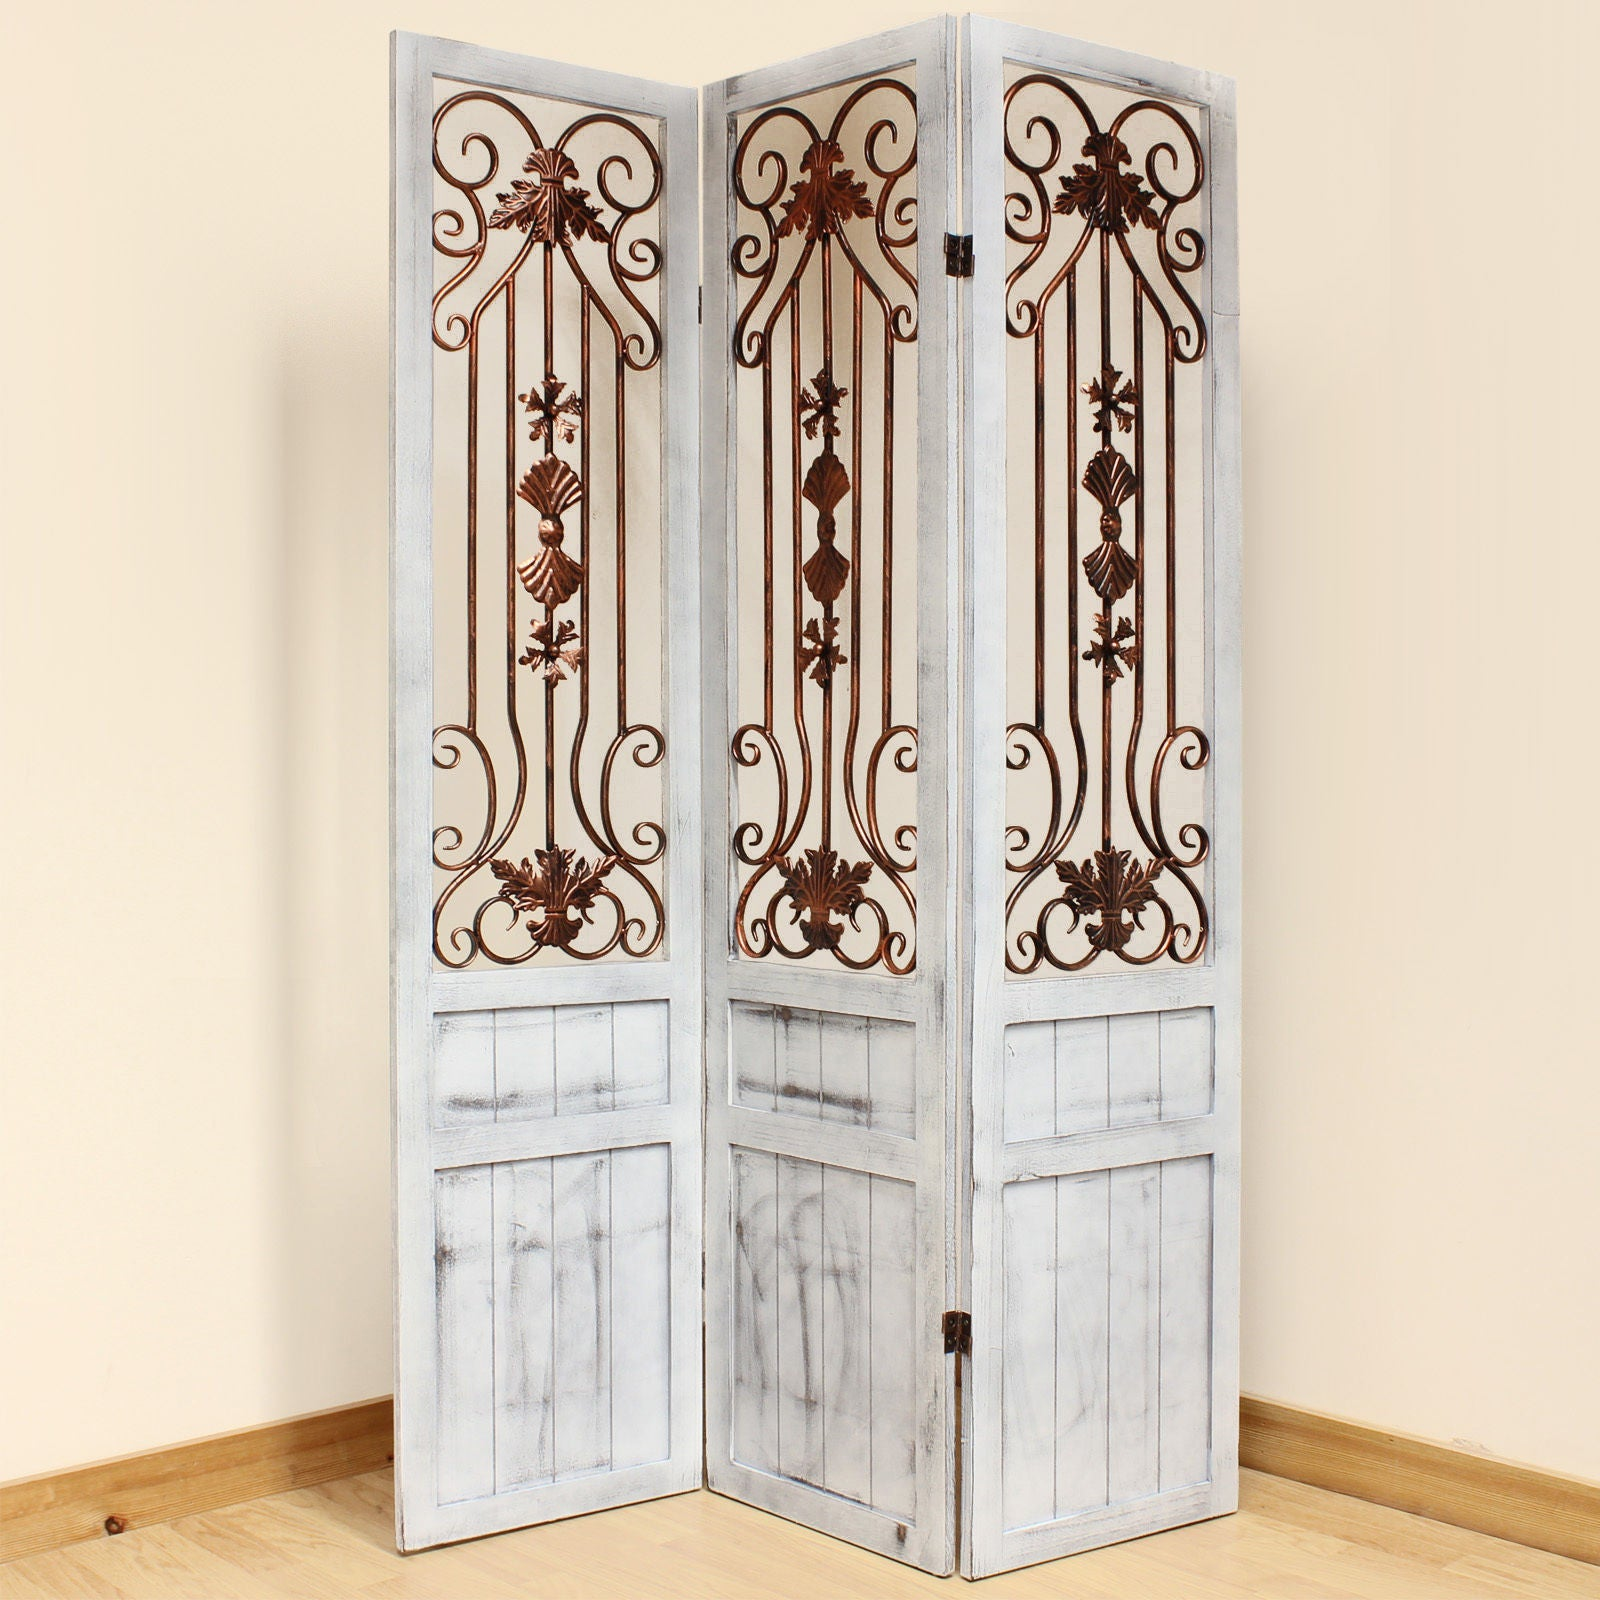 Vintage Whitewash Room Divider Screen - 3 Panel